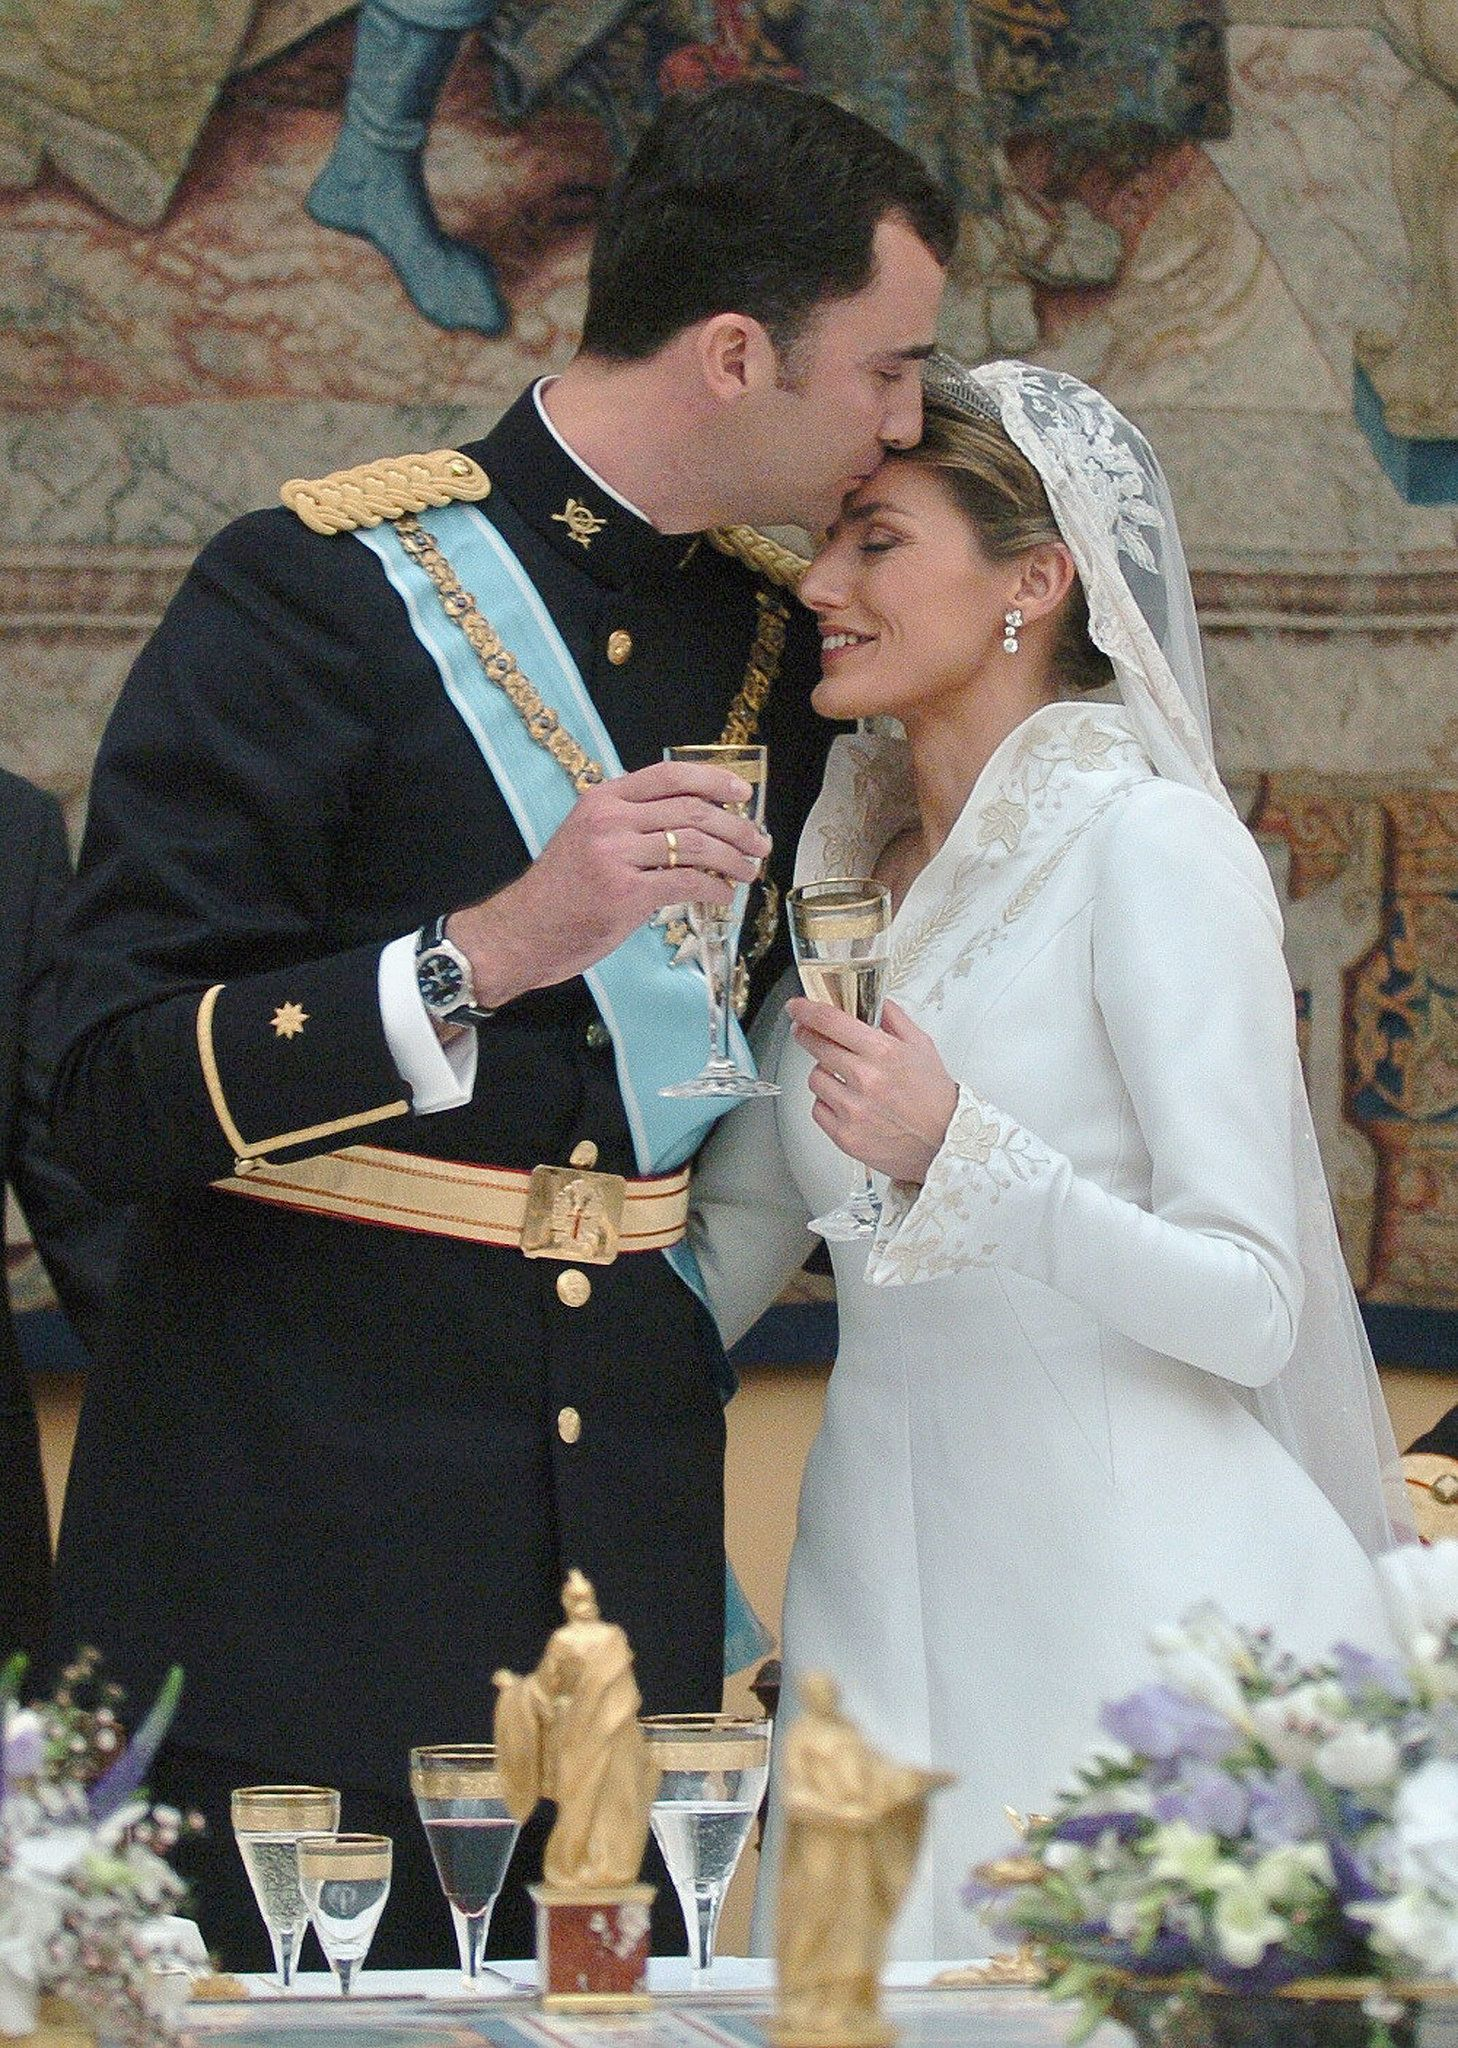 In May 2004 Felipe Gave Letizia A Tender Kiss On Their Wedding Day 15 Reasons To Fall In Love With Spain S New King And Queen Royal Weddings Royal Brides Royal Wedding Gowns [ 2048 x 1458 Pixel ]